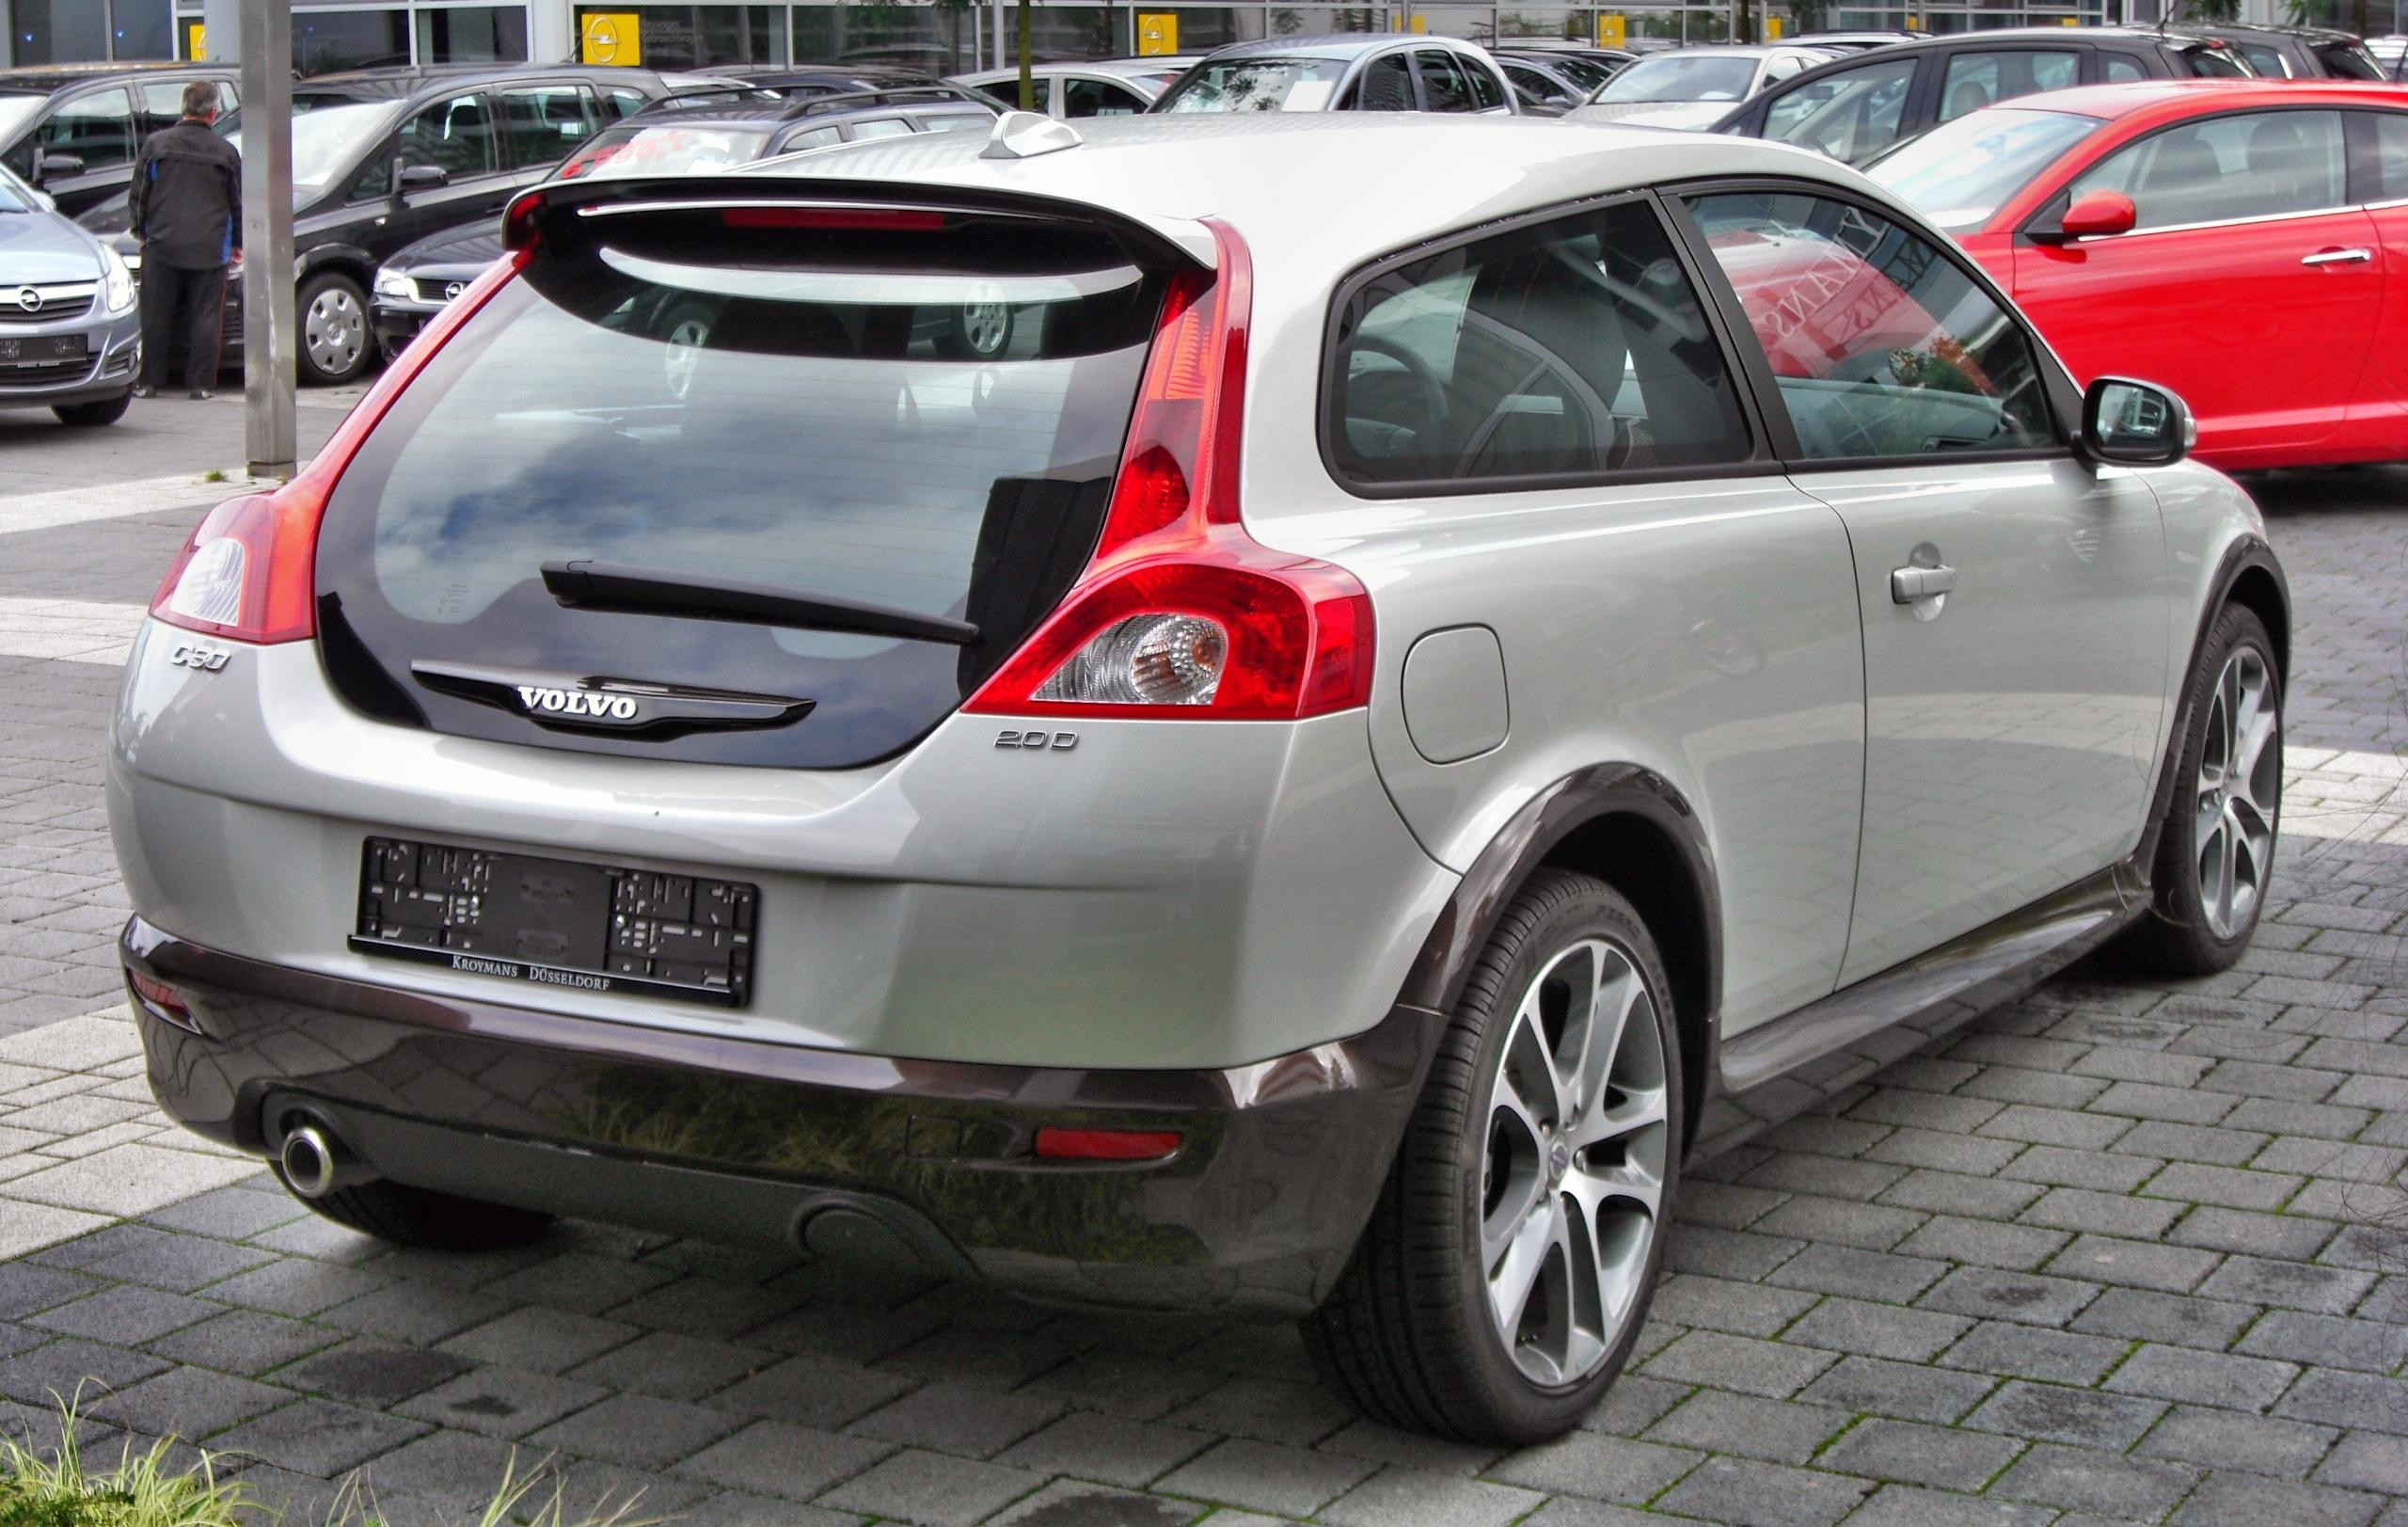 file volvo c30 2 0 d rear jpg wikimedia commons. Black Bedroom Furniture Sets. Home Design Ideas